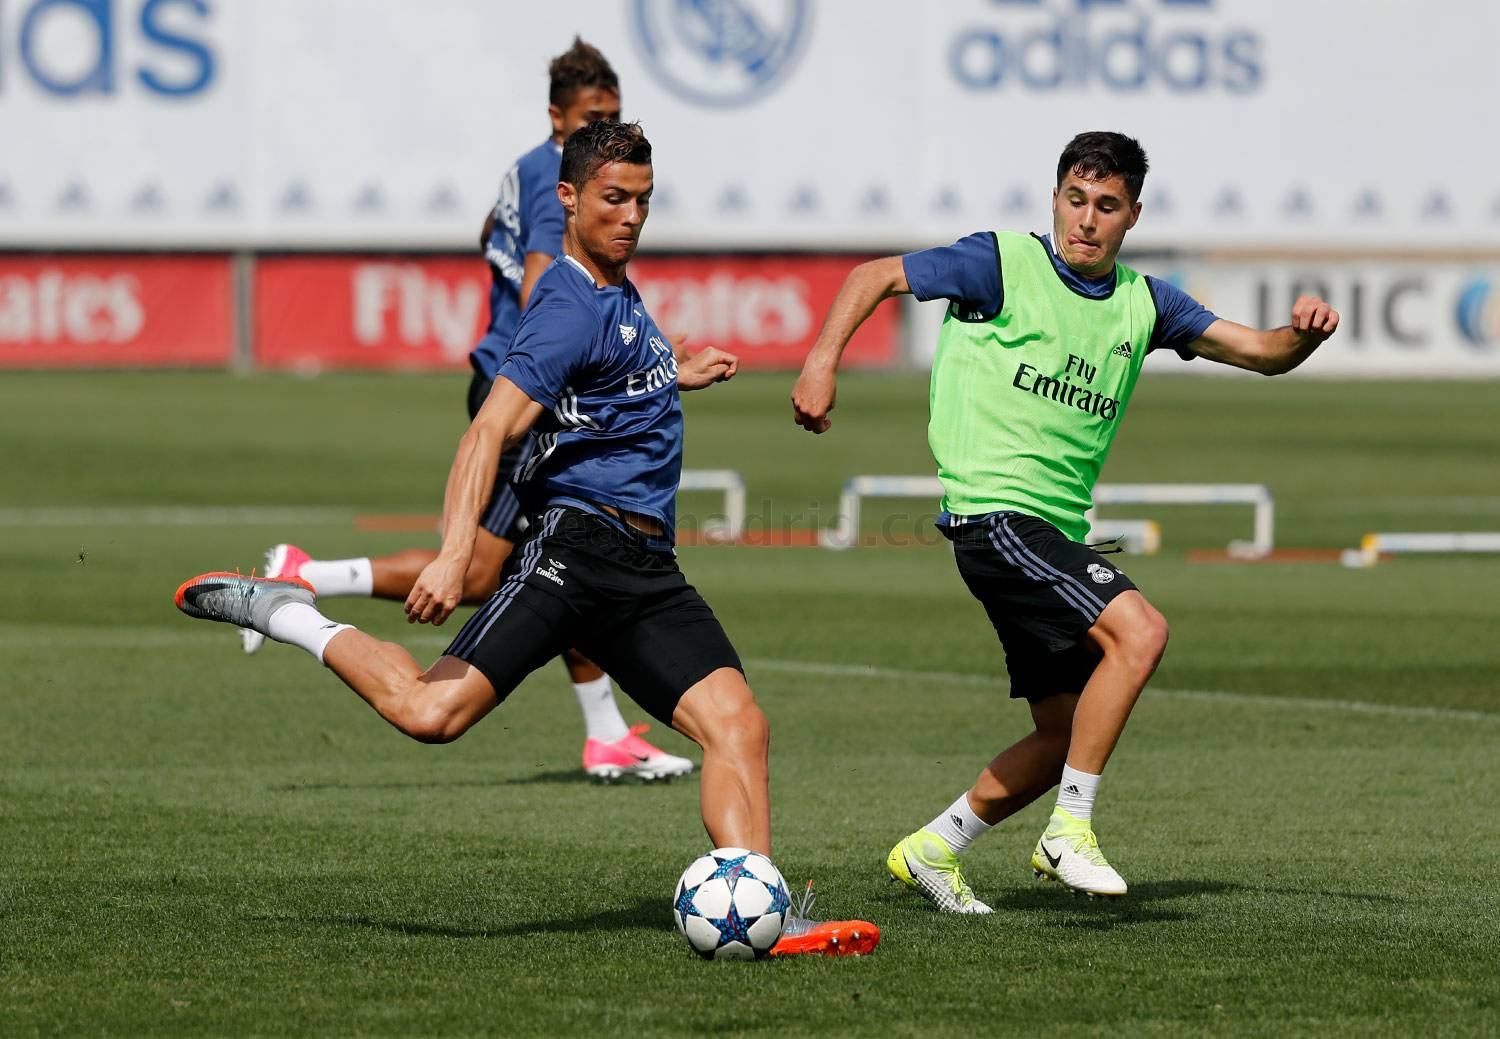 Real Madrid - Entrenamiento del Real Madrid - 16-04-2017